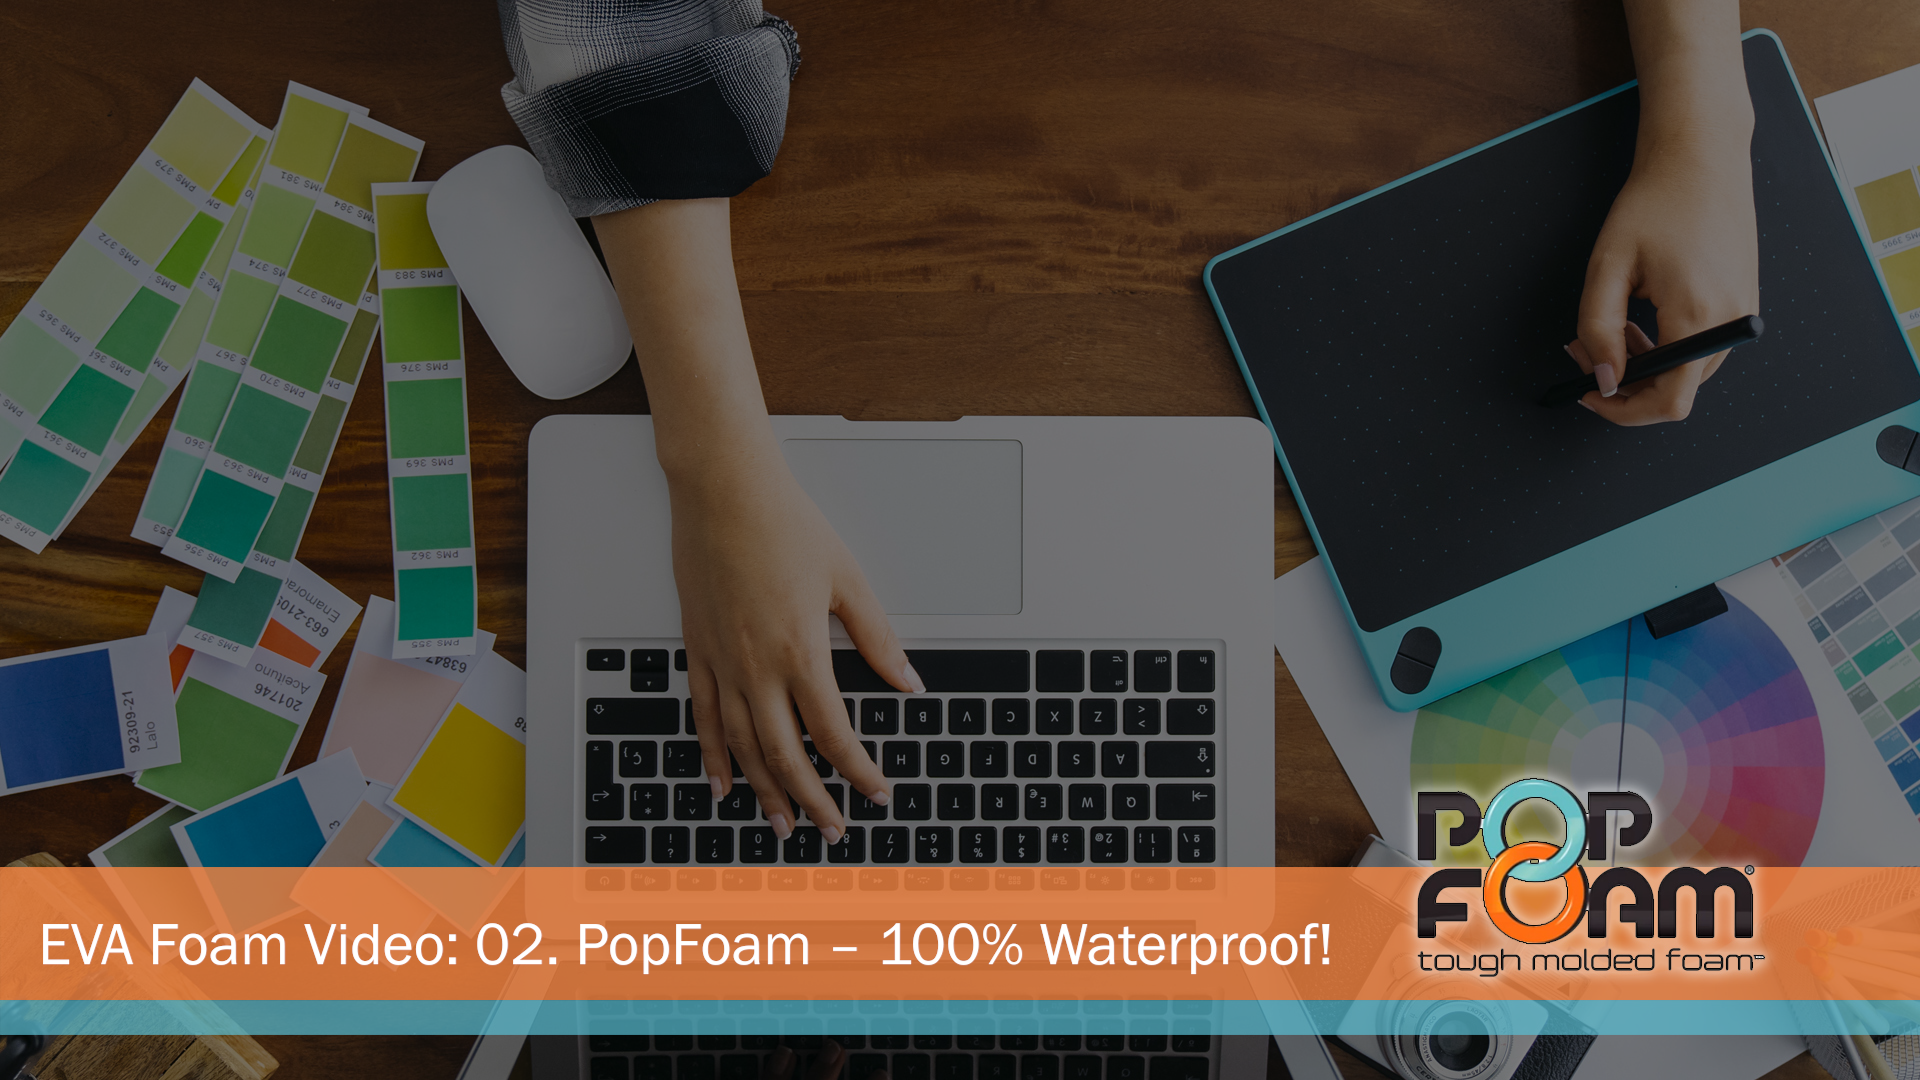 EVA Foam Video: 02. PopFoam – 100% Waterproof!